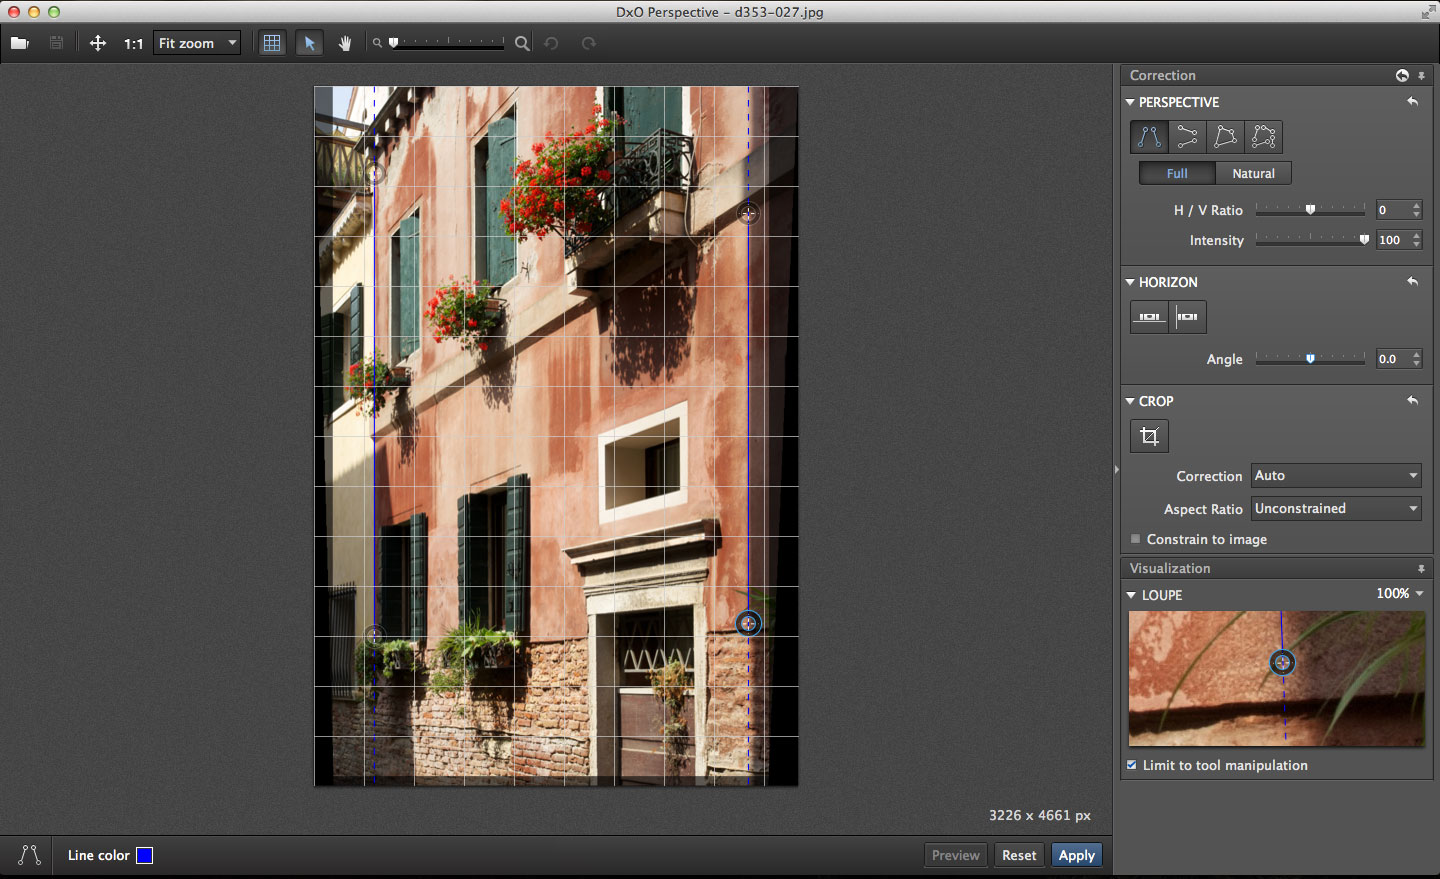 DxO Perspective for Mac